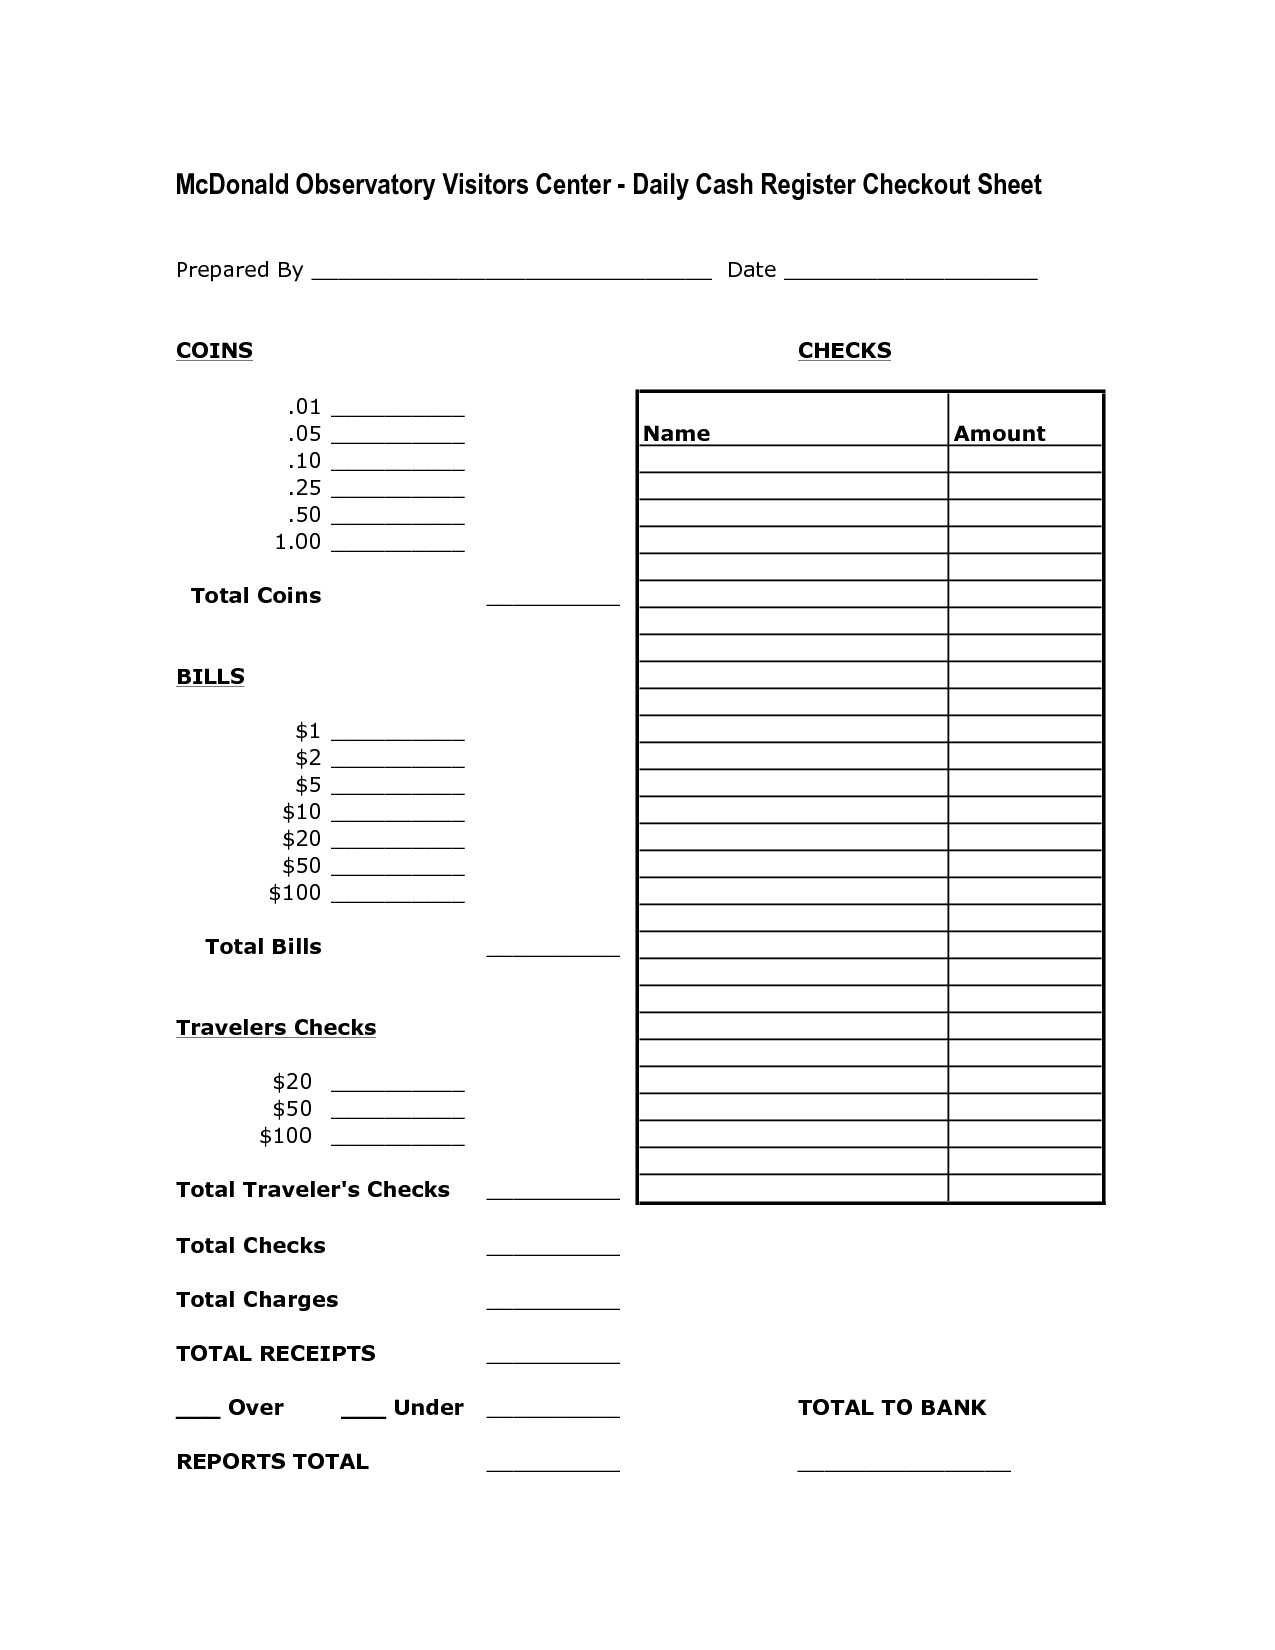 Daily Money Worksheets | Printable Worksheets And Activities For End Of Day Cash Register Report Template